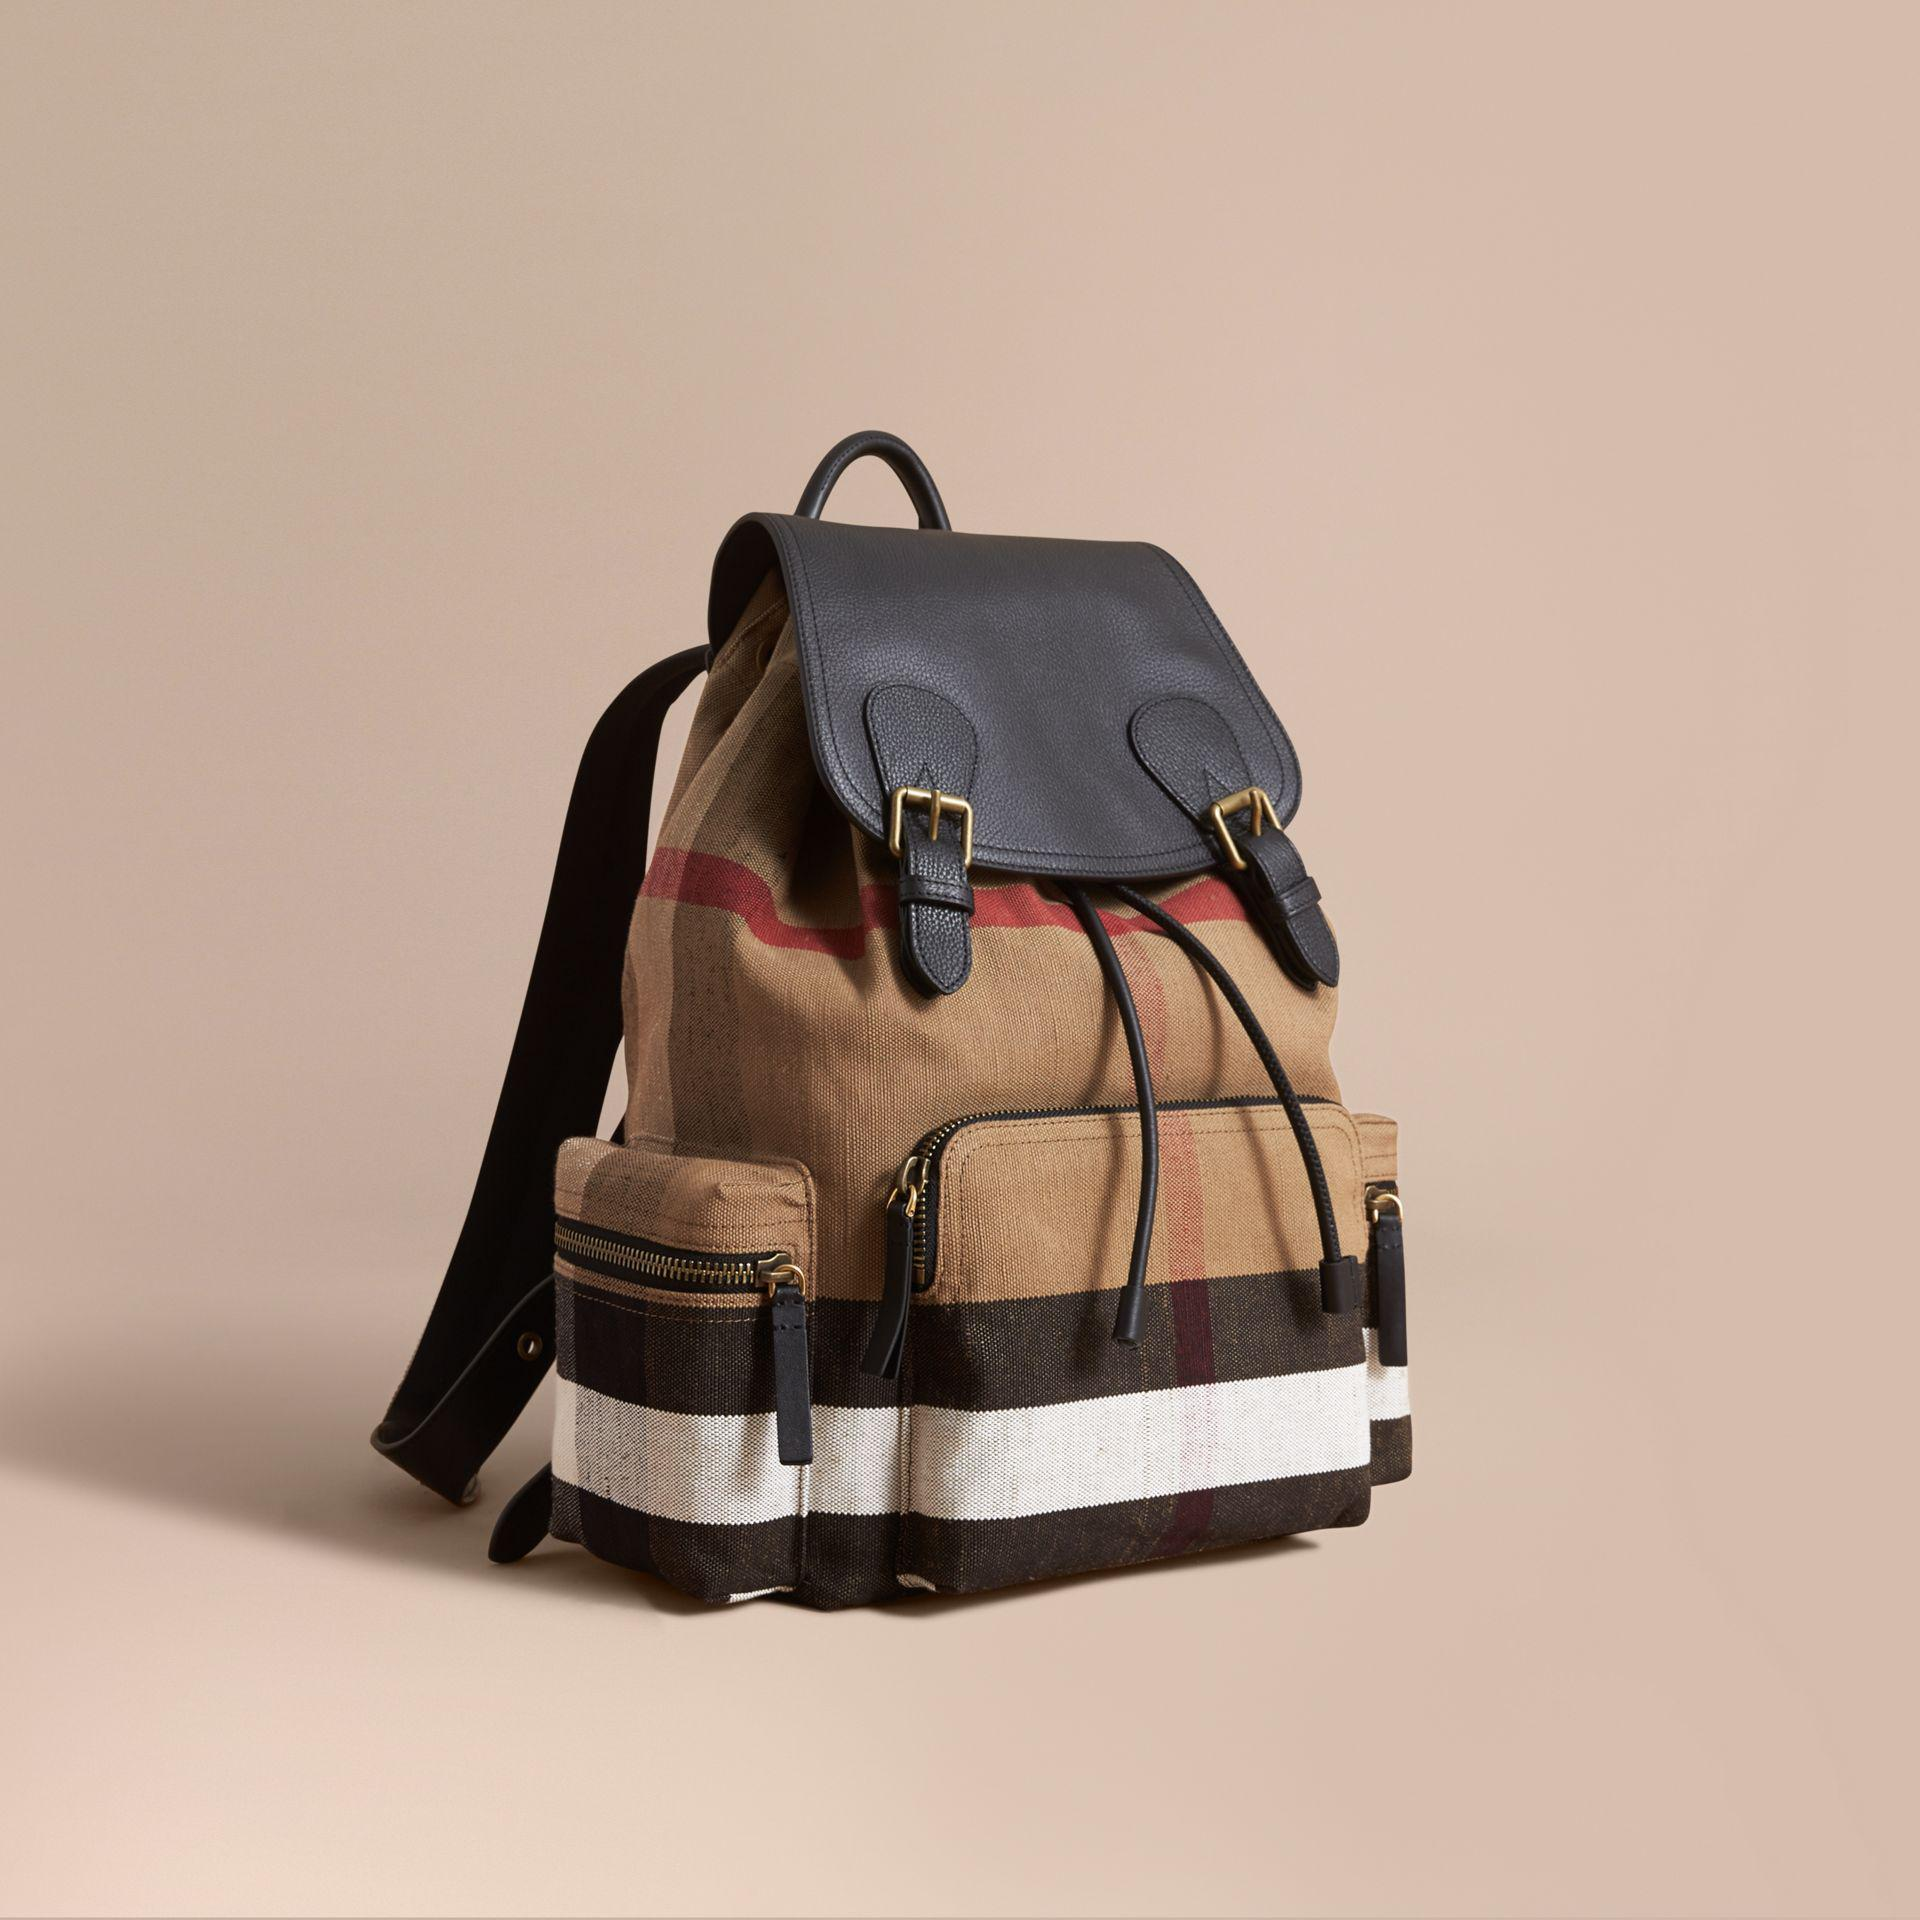 Sale Low Shipping Fee Low Shipping Cheap Online Burberry Large Rucksack in Canvas Check and Leather Clearance Best Place Free Shipping Comfortable Buy Cheap Choice tYnEMhD